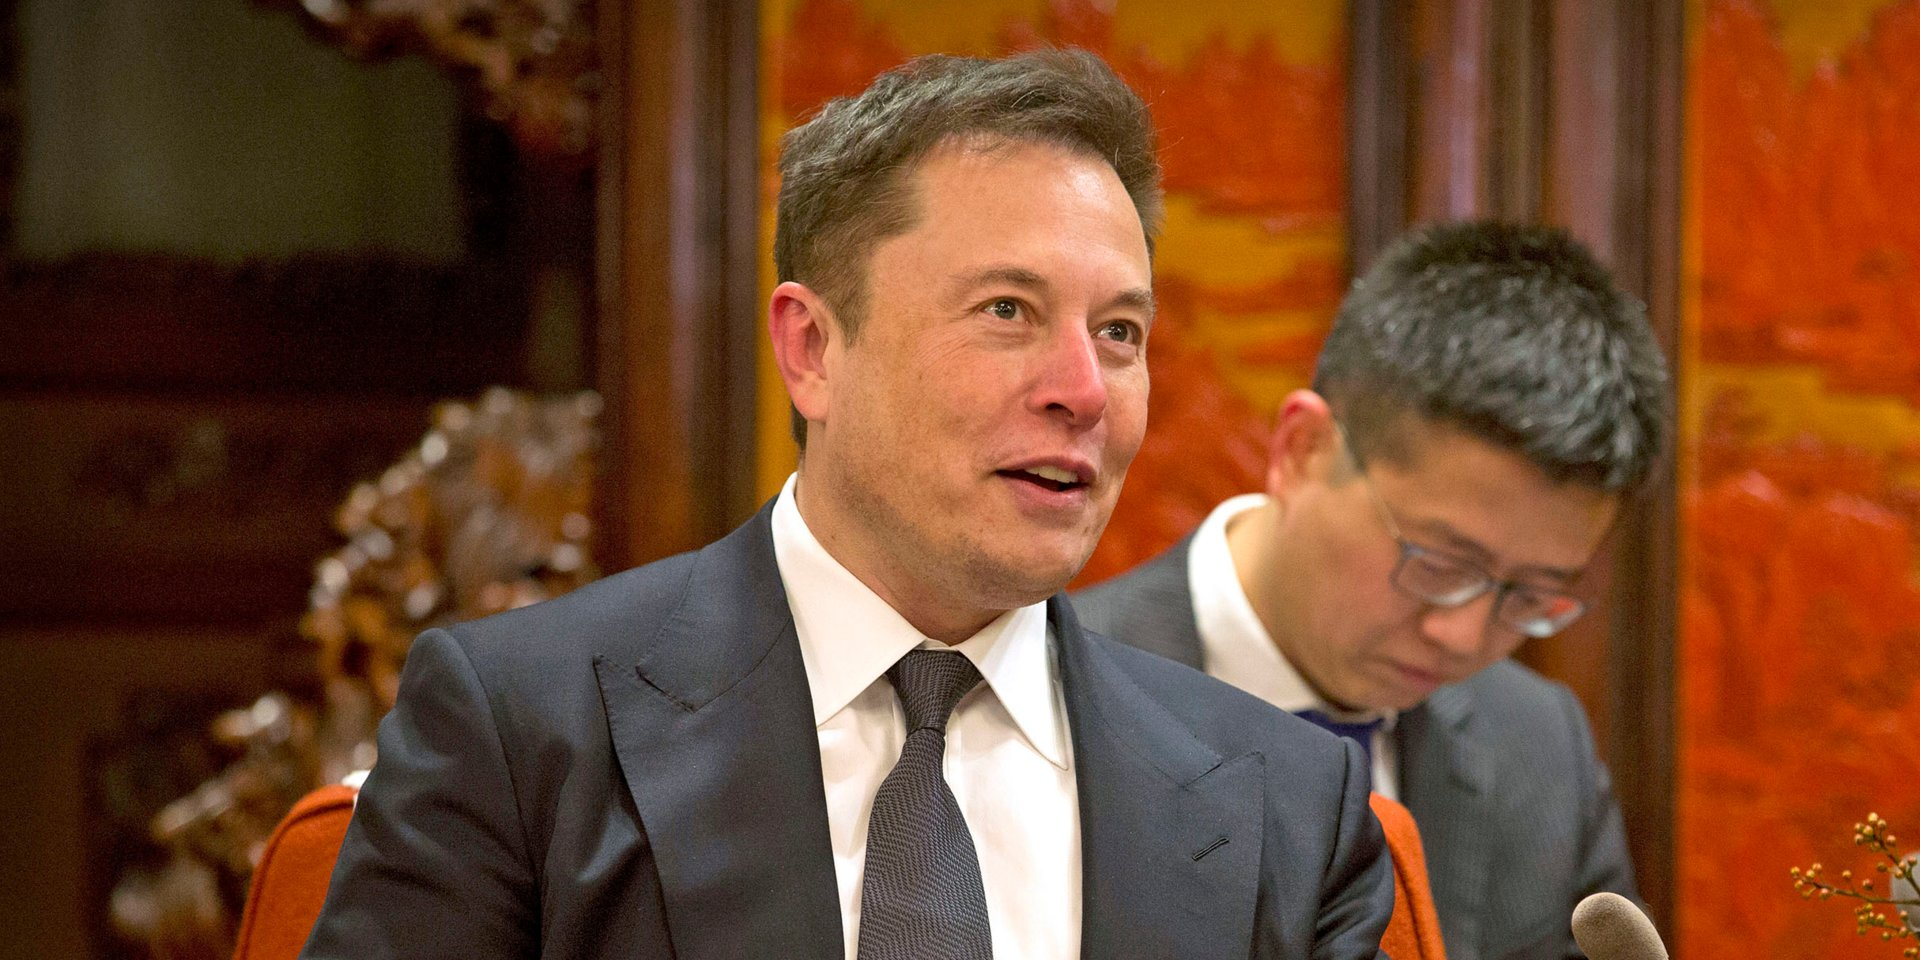 Elon Musk said he wants to buy The Onion after his satirical startup shut down earlier this year